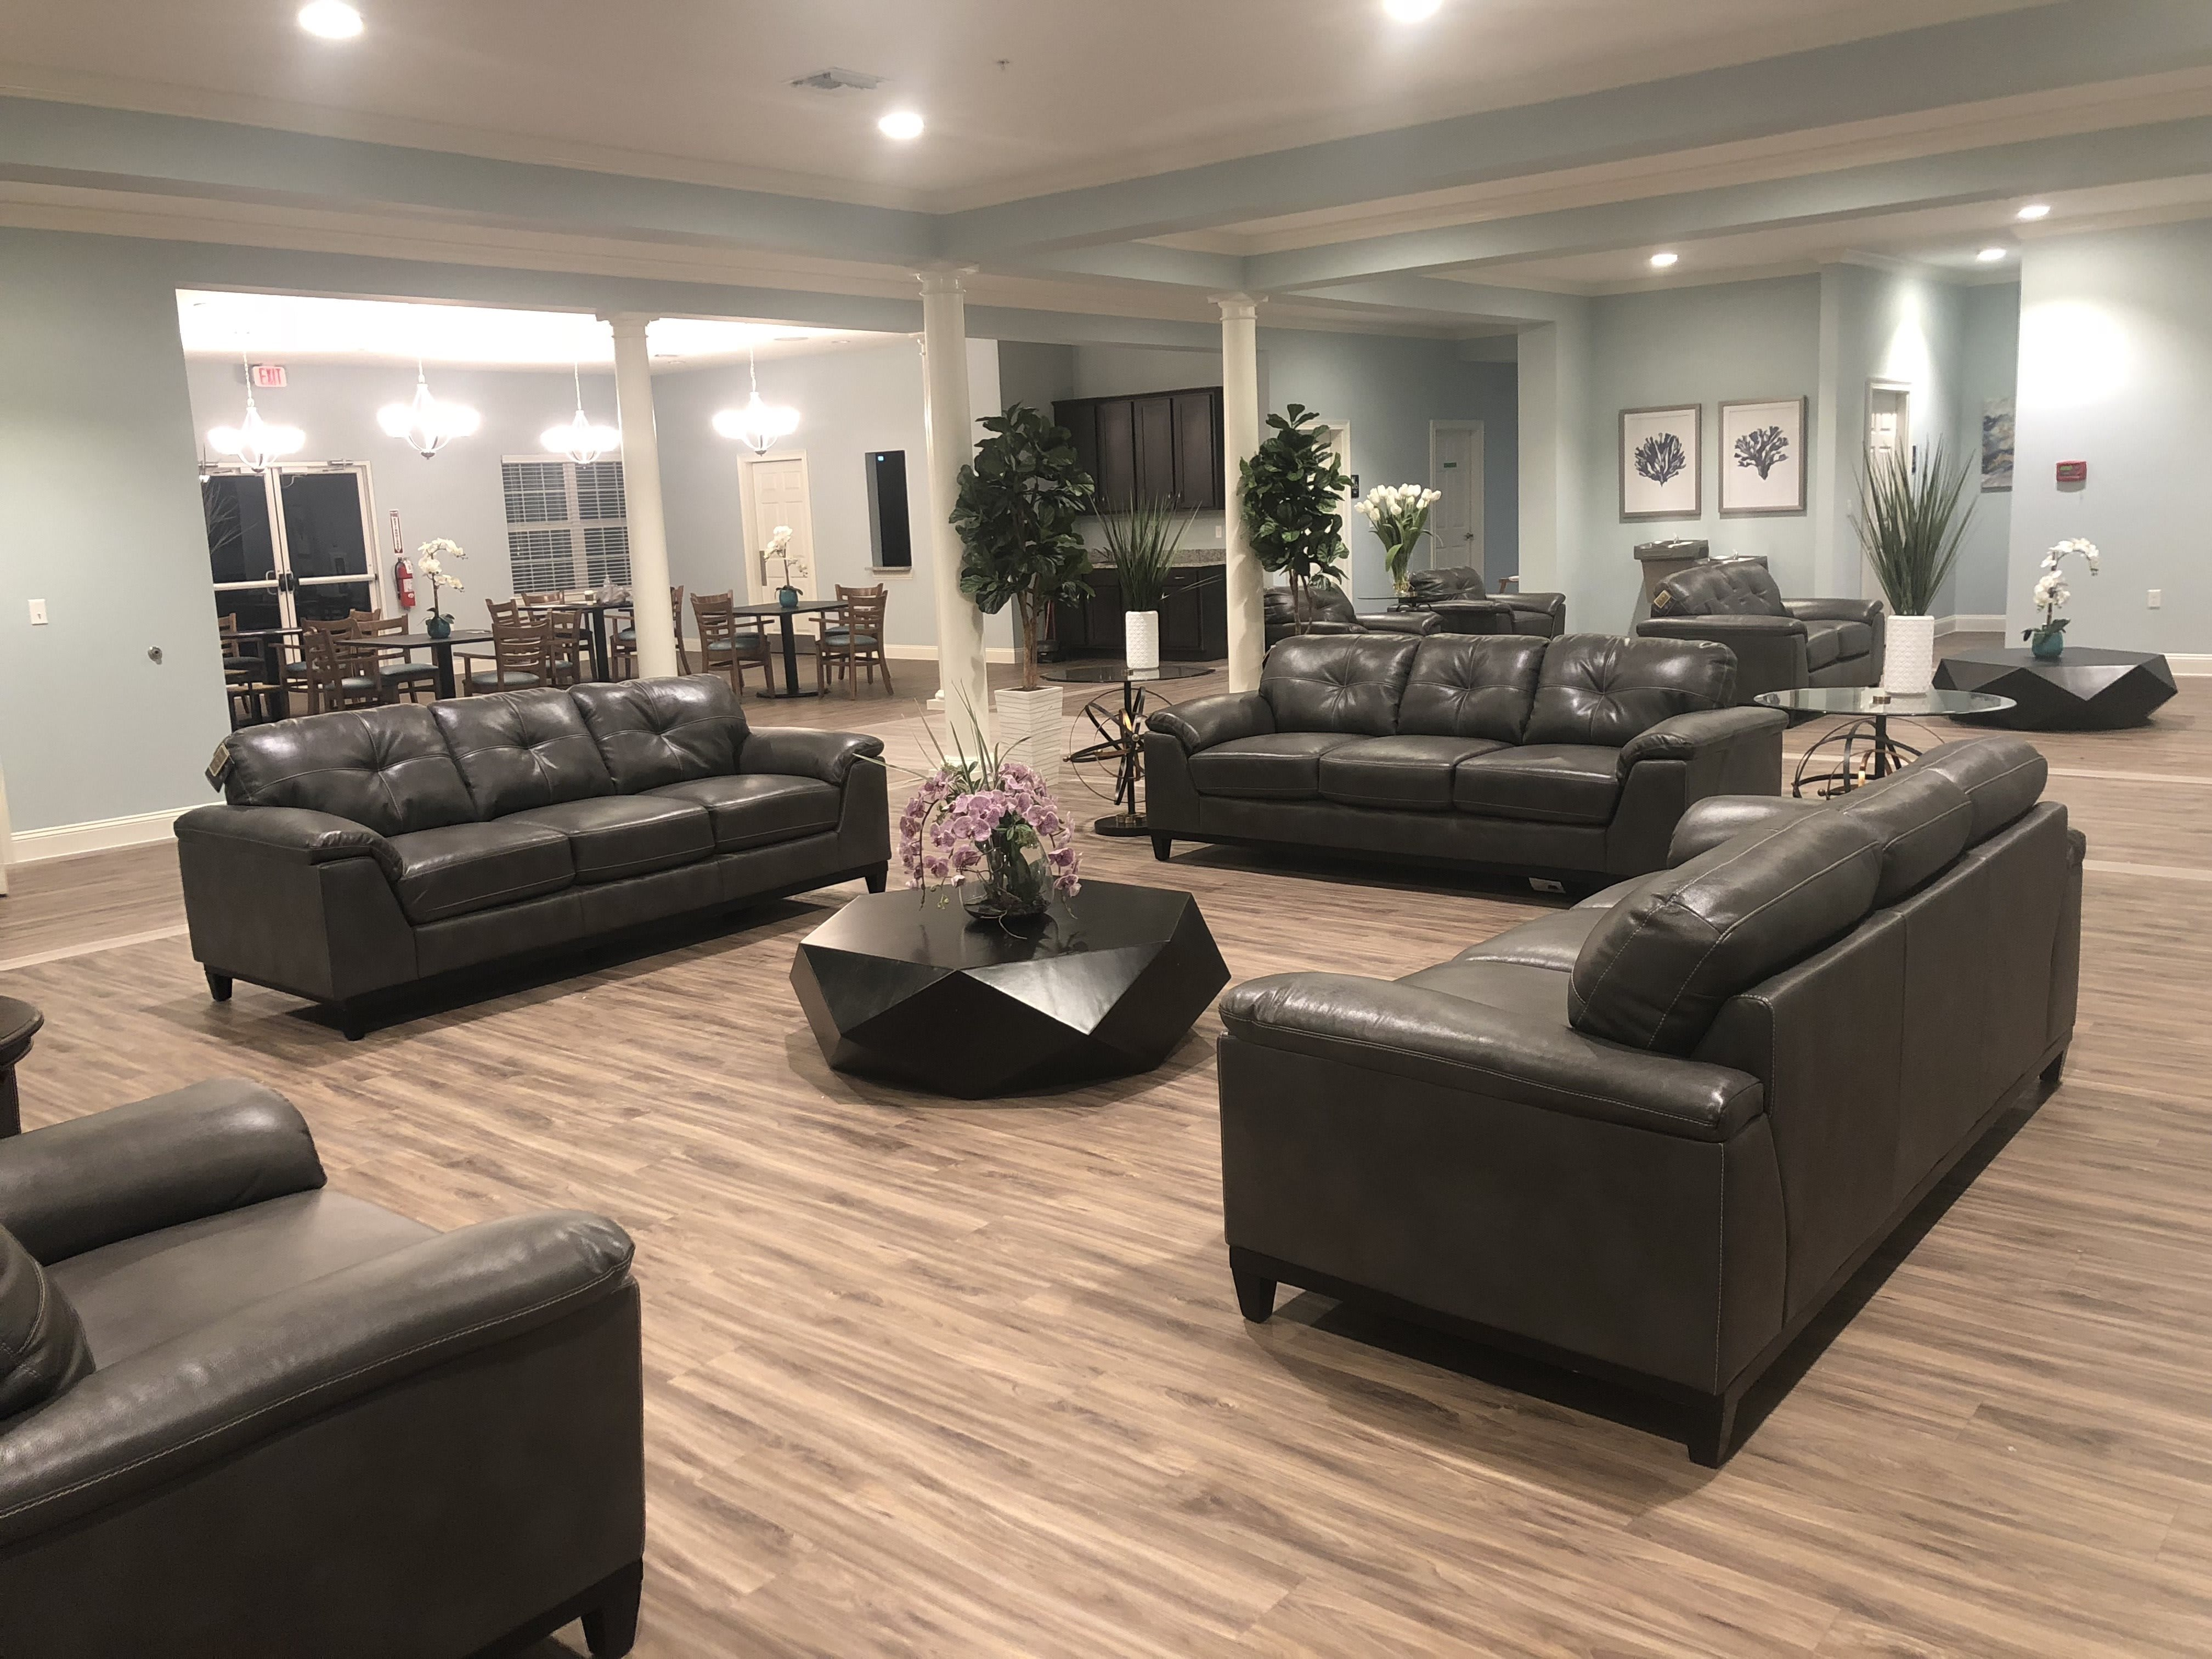 Photo 1 of Silver Treasures Assisted Living at Orange Park - Boutique Style Assisted Living